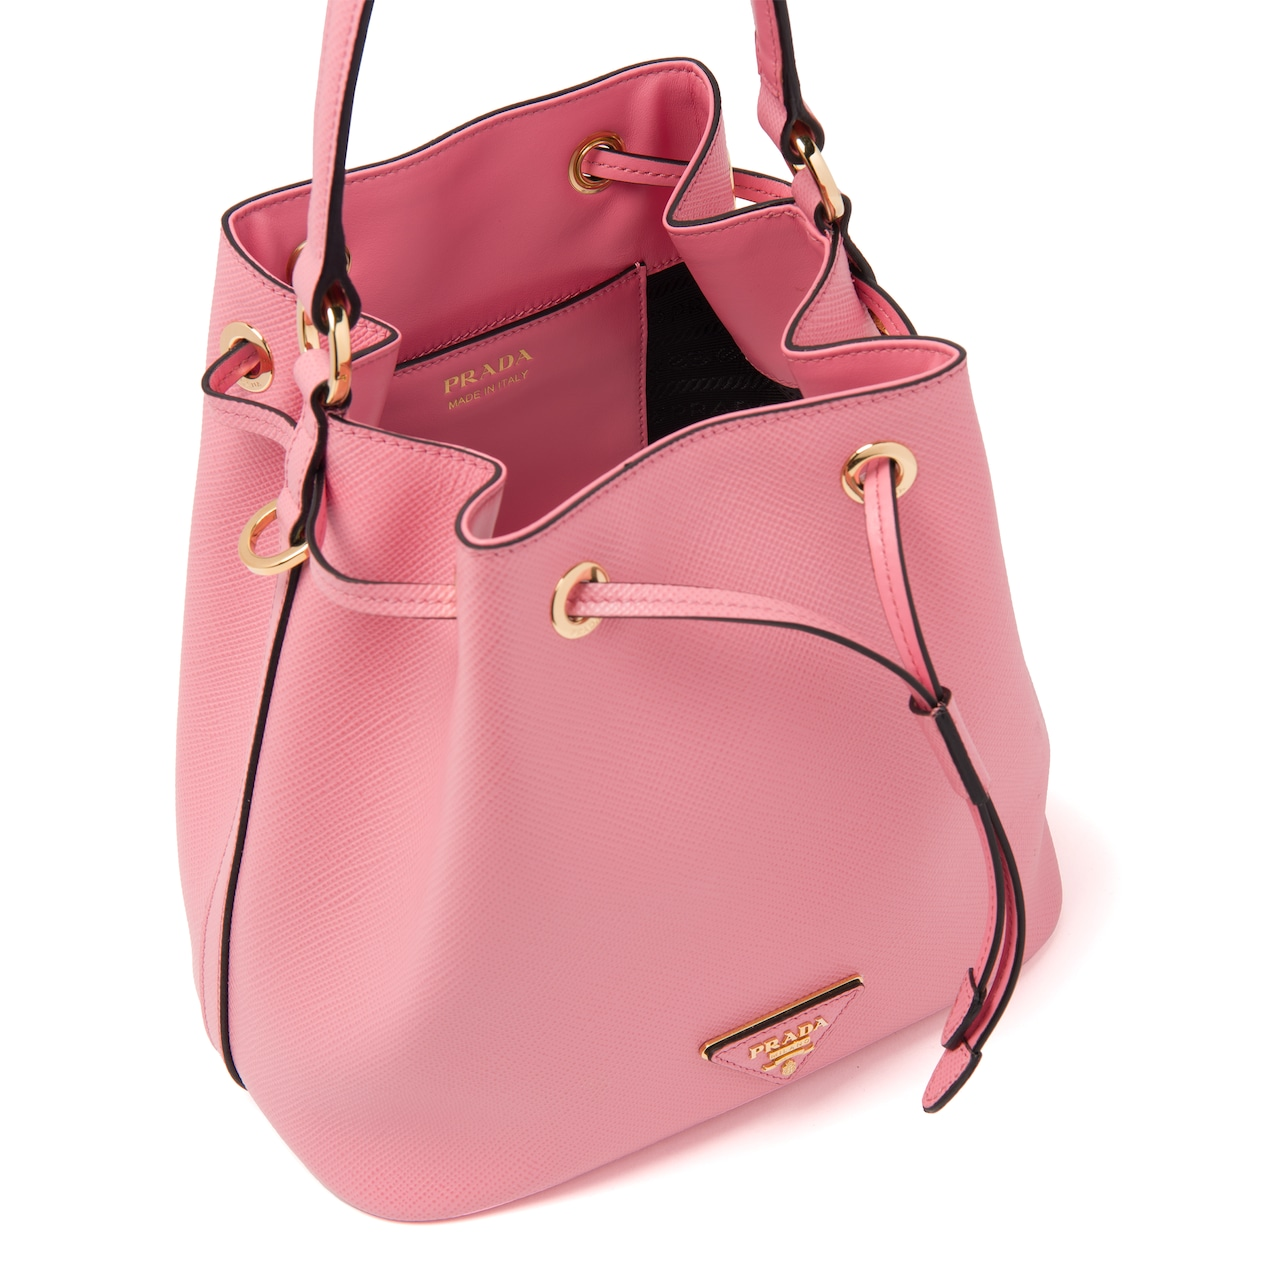 Prada Saffiano leather bucket bag 5